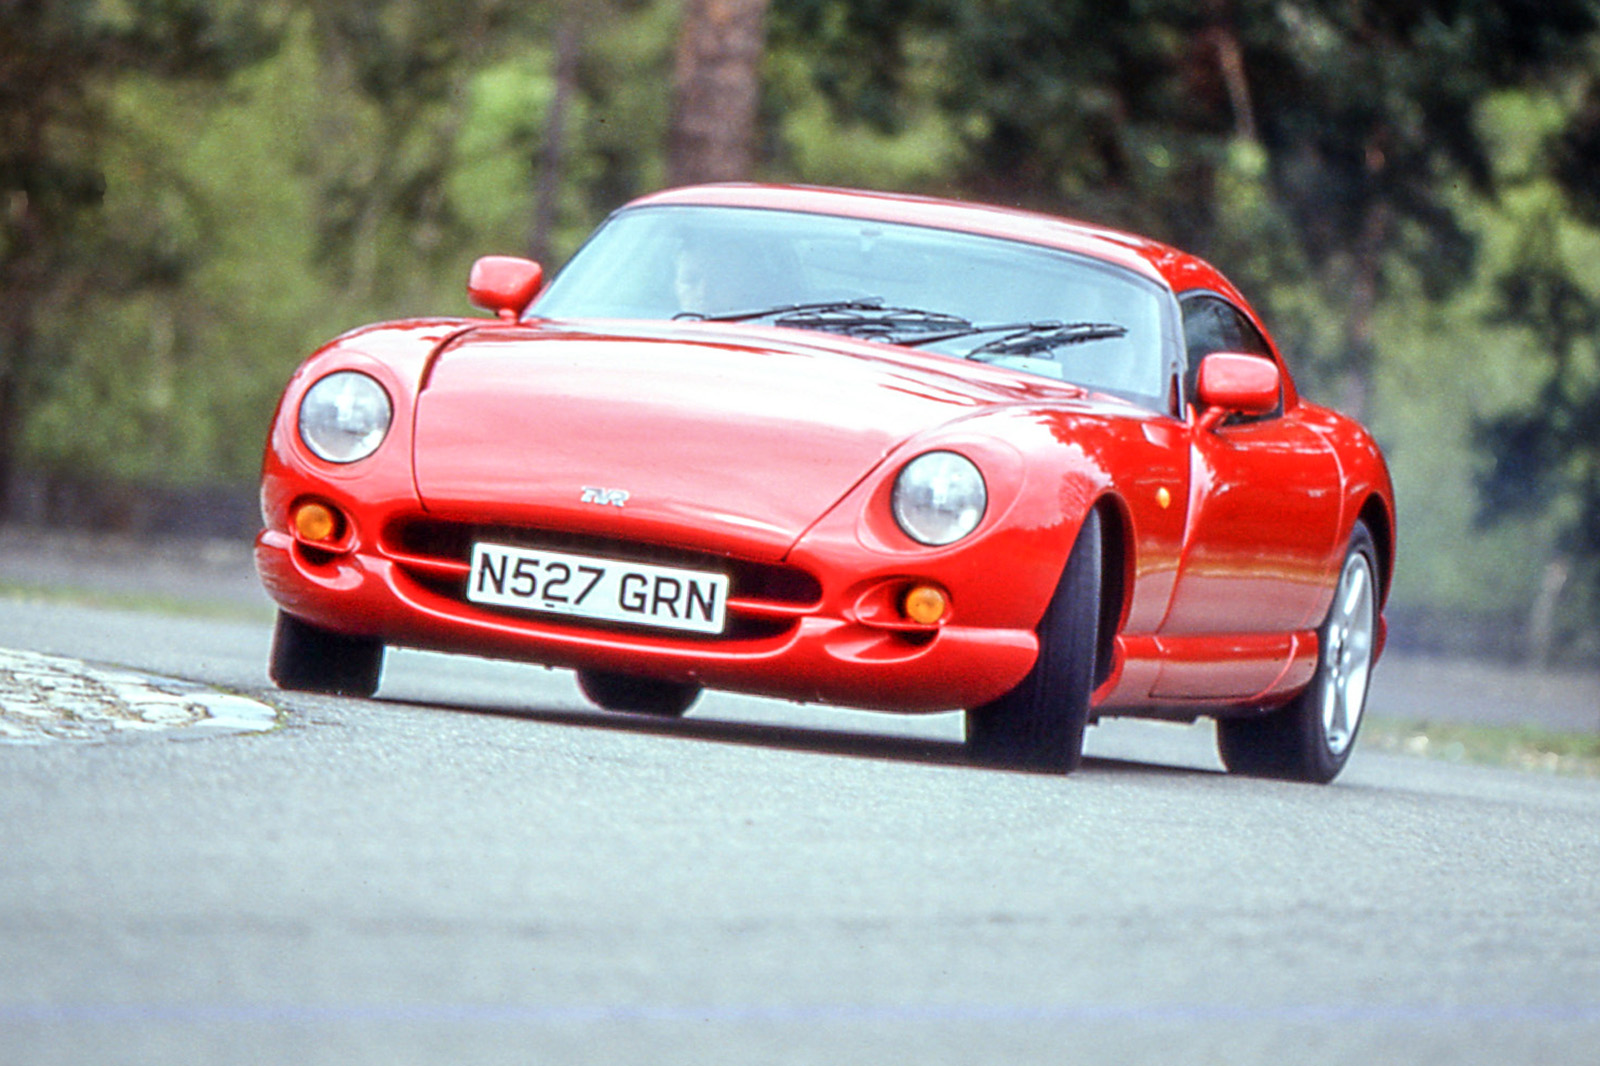 used tvrs to tempt you from £5k to £50k - used car buying guide, Wiring diagram